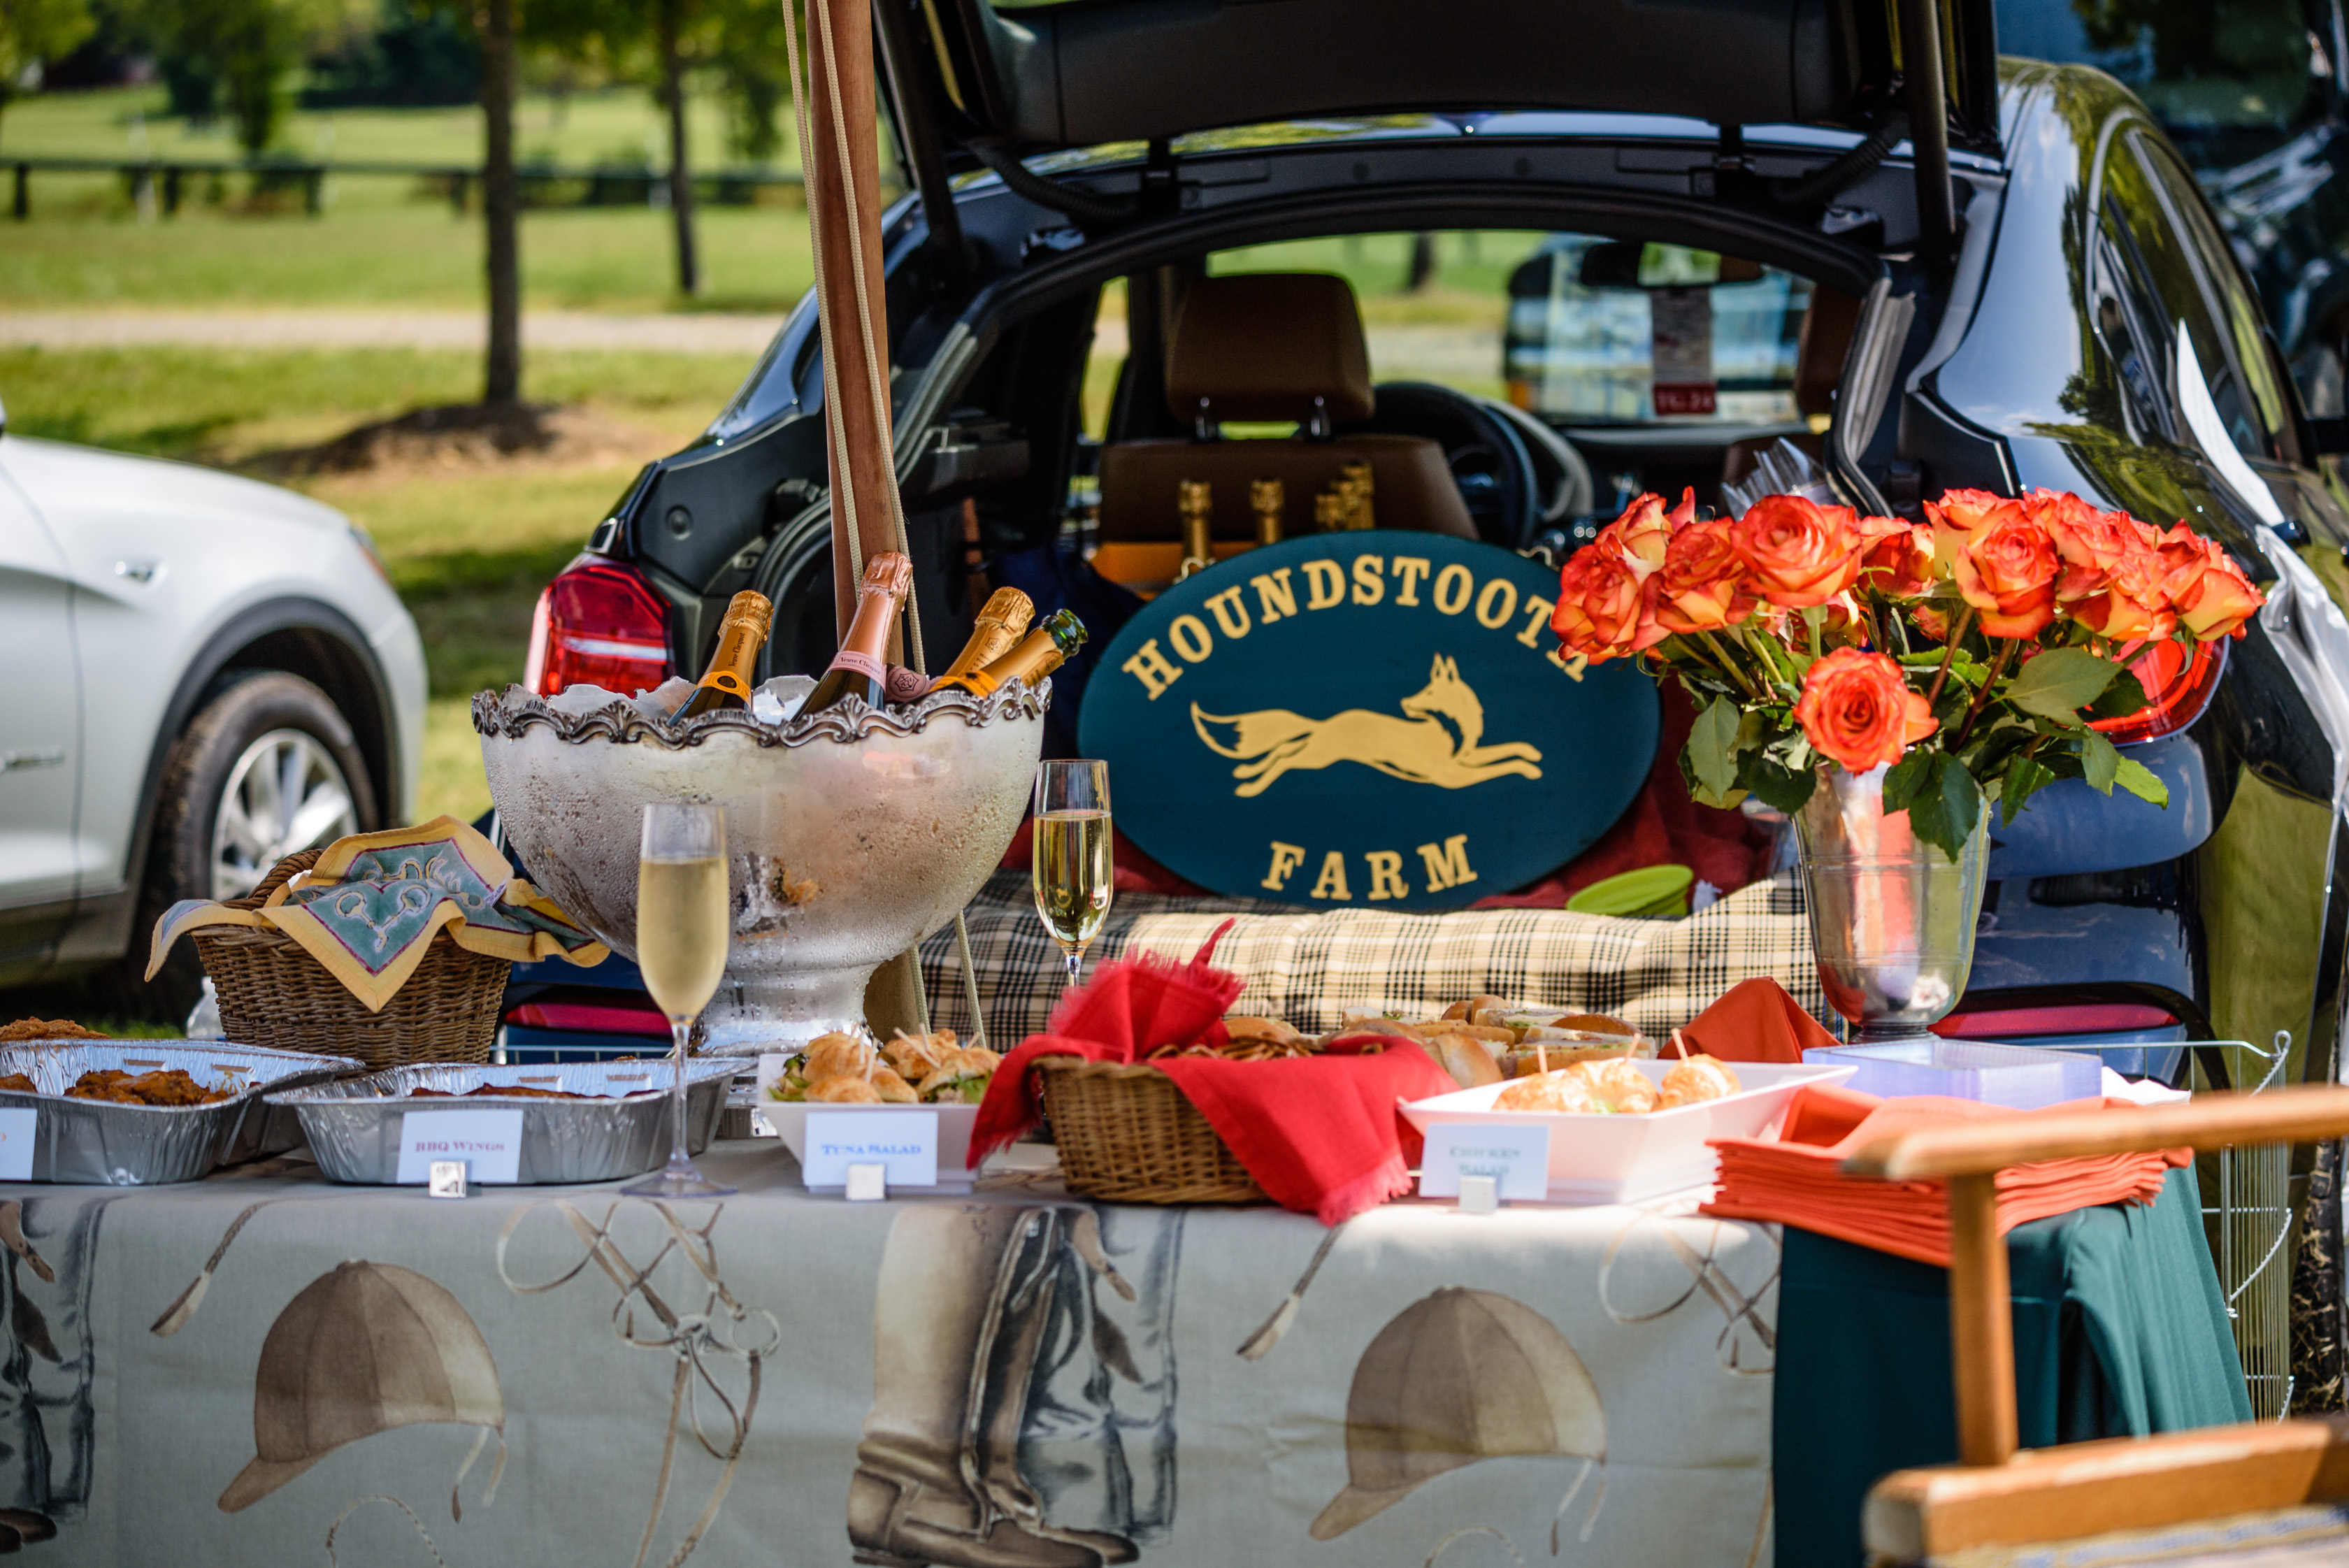 NSLM Polo Classic tailgating at its best. Photo by Middleburg Photo